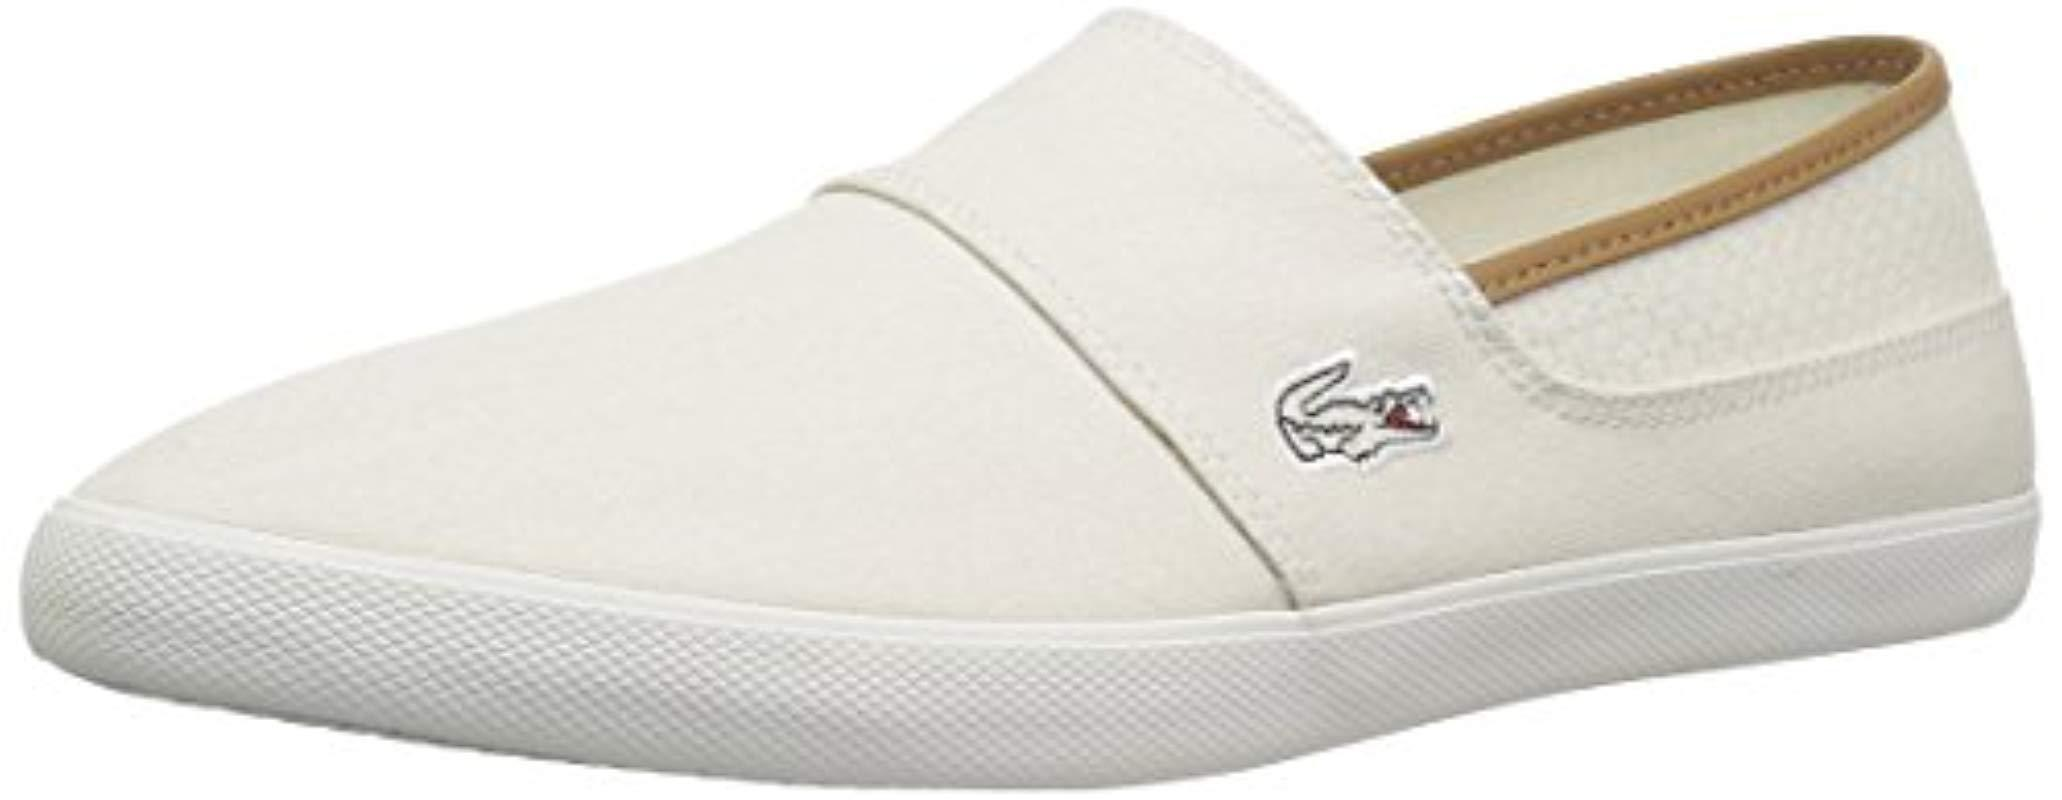 42755bdf0a3b3 Lyst - Lacoste  s Marice Slip-ons in White for Men - Save ...